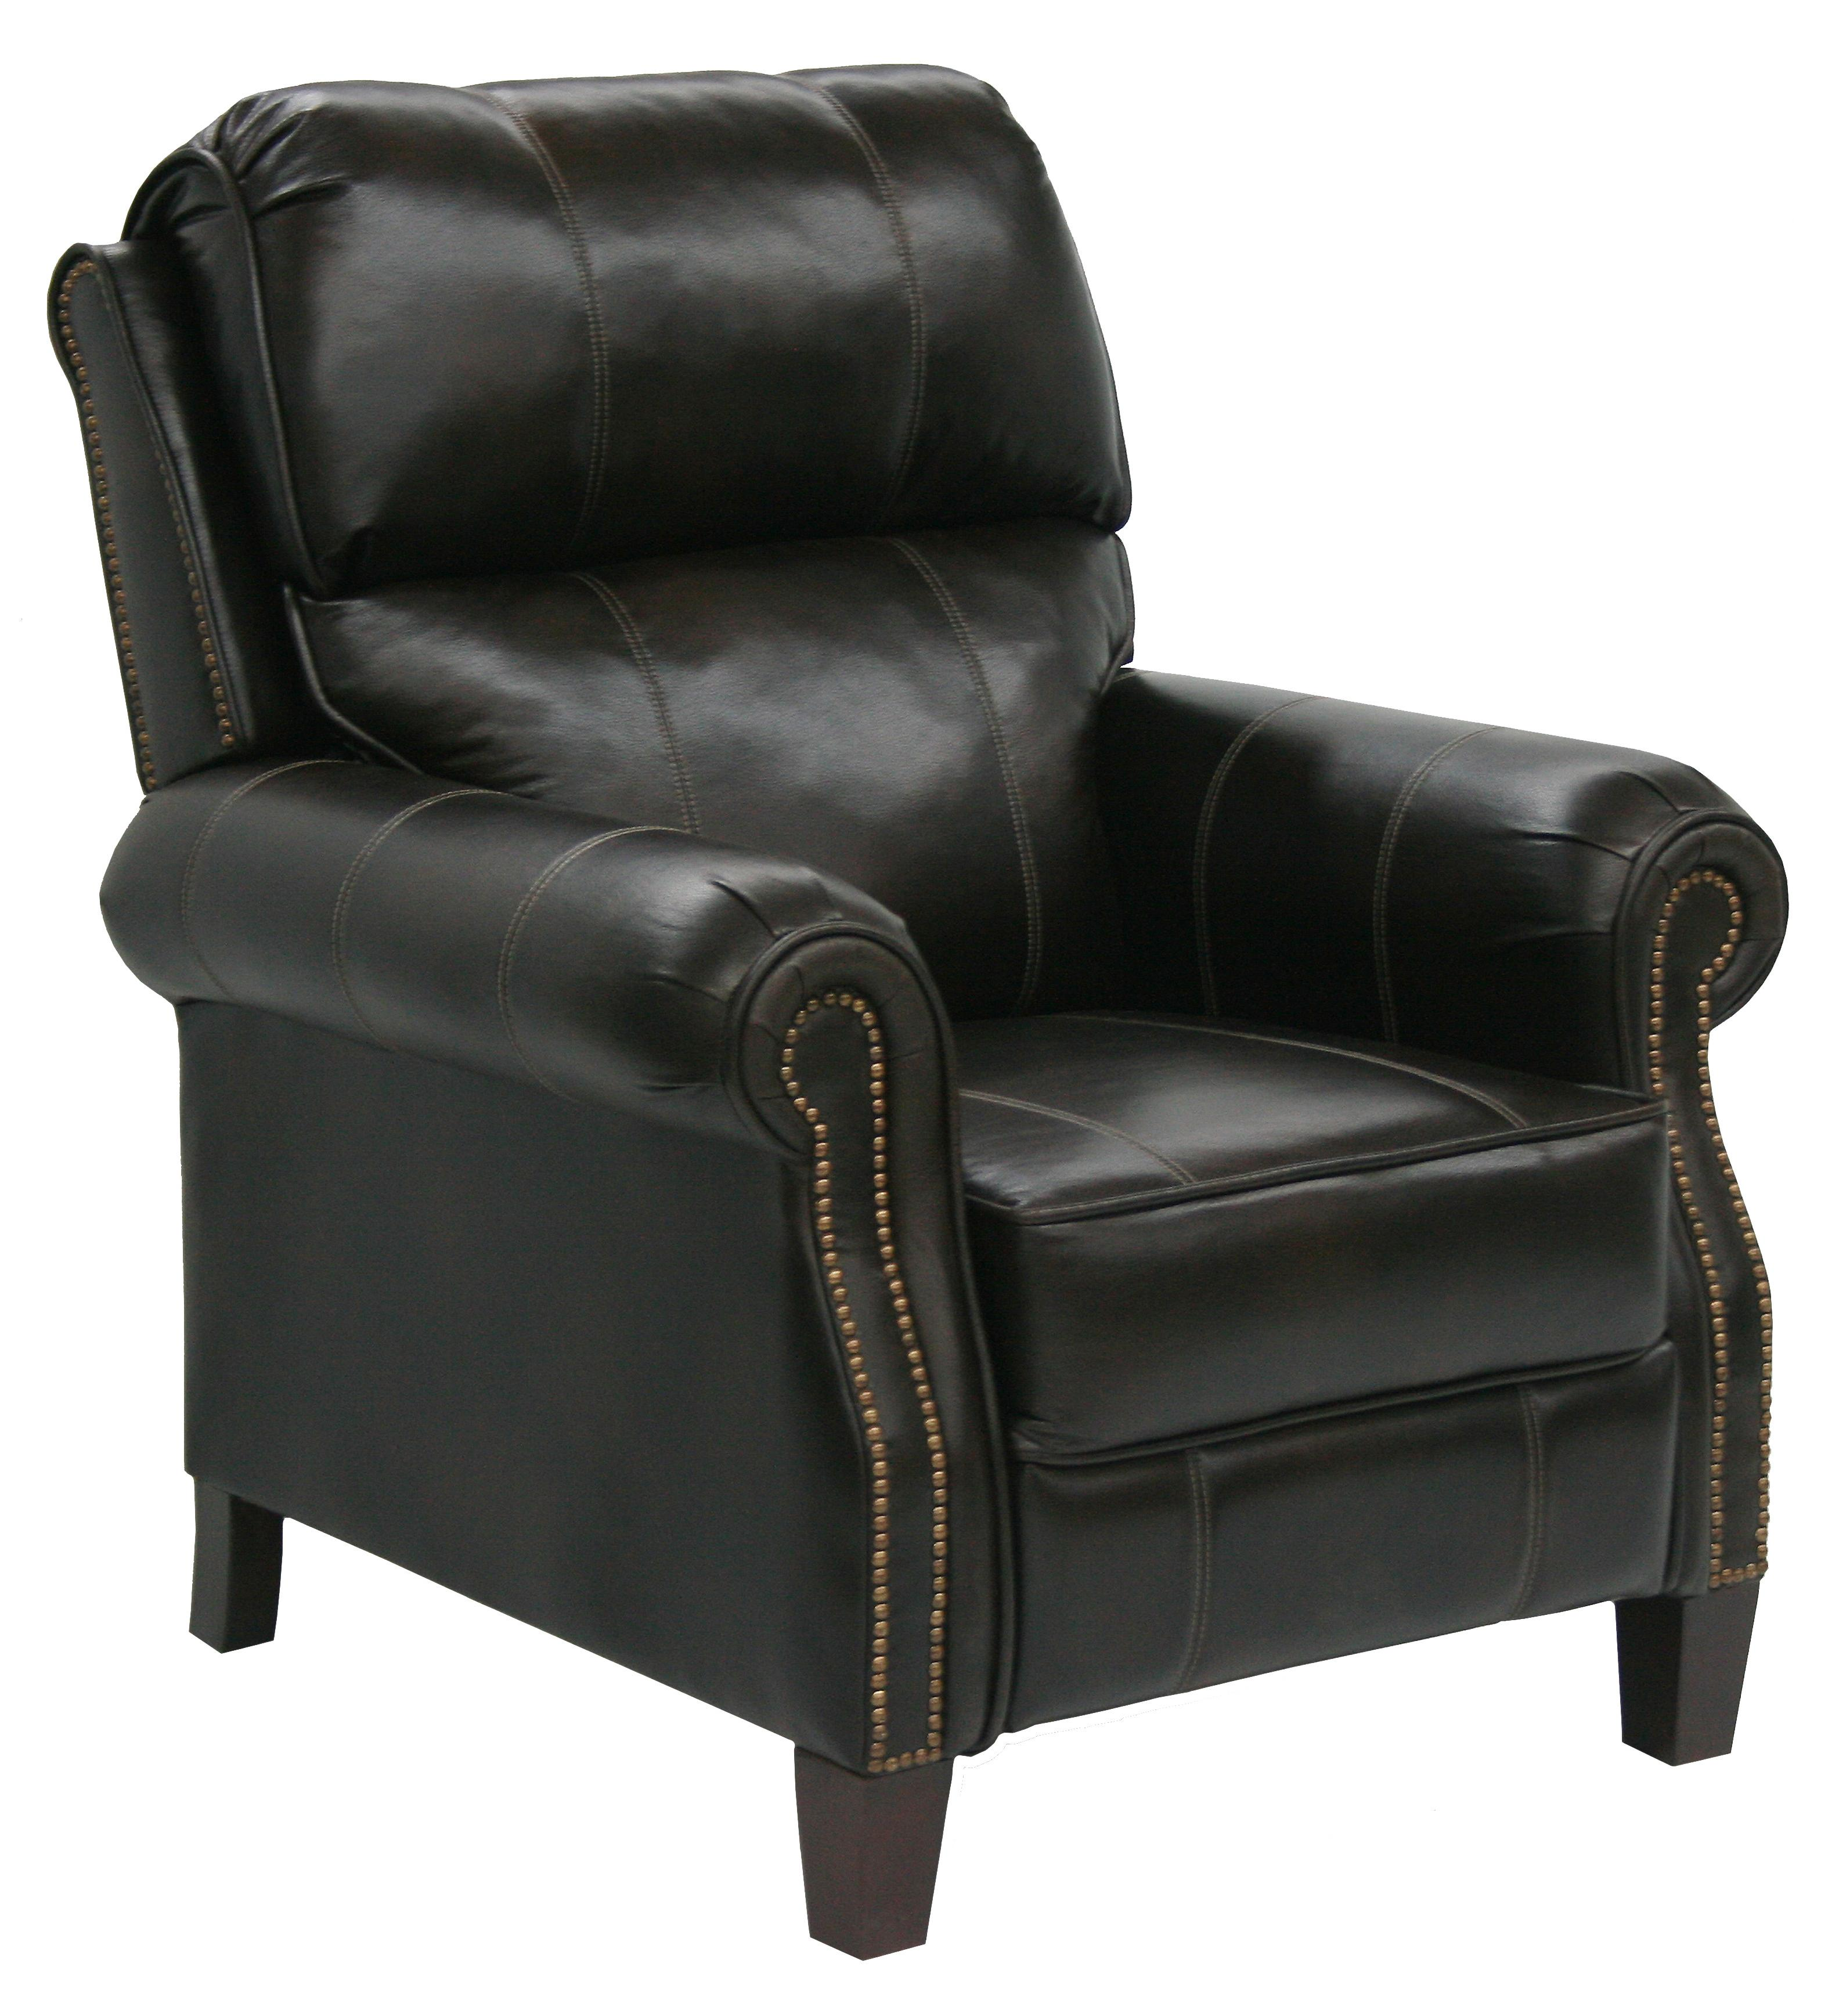 Stylish Recliner Catnapper Motion Chairs And Recliners Frazier High Leg